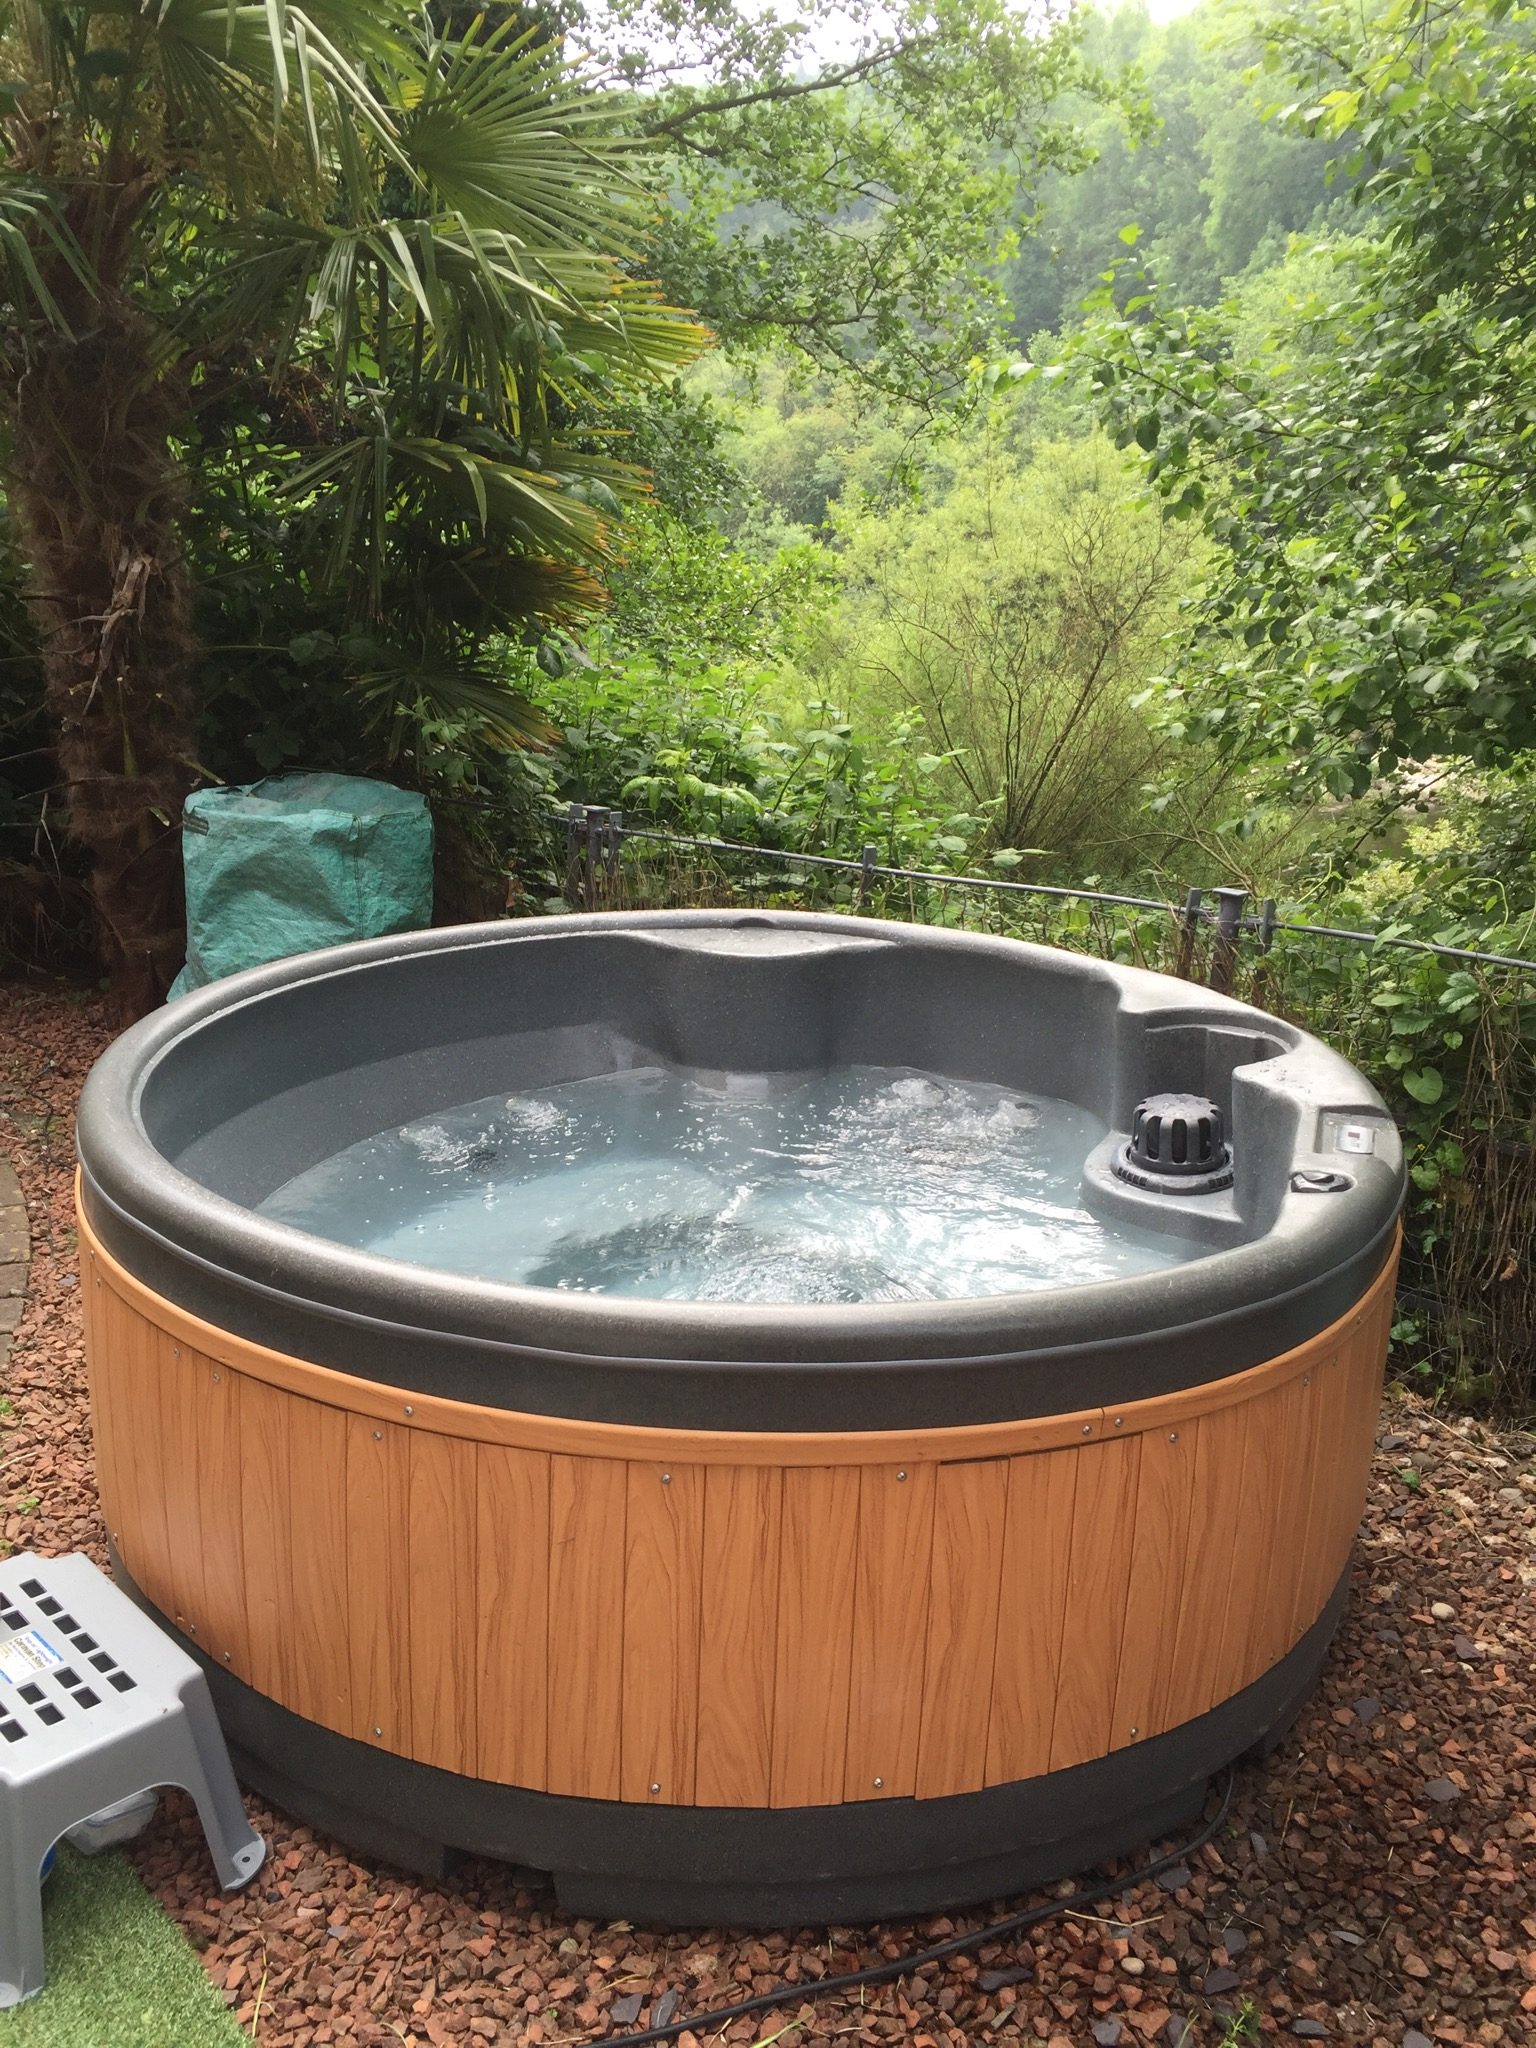 Cheap Hot Tubs >> Cheap Hot Tub Hire Luxury Affordable Jacuzzi Rental 07973 298345